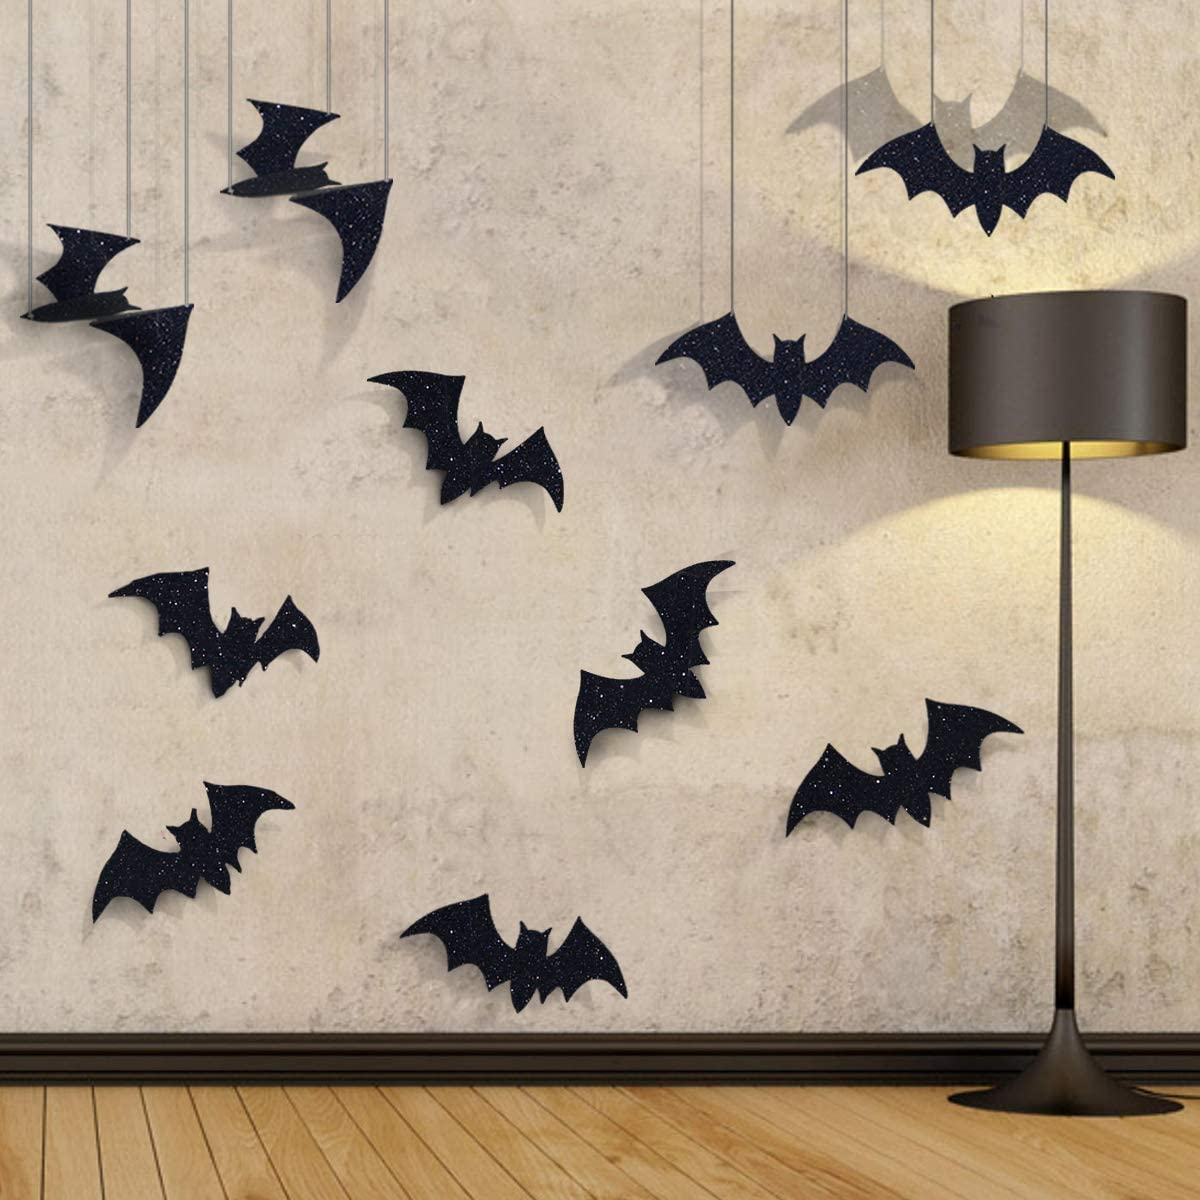 Pawliss Halloween Decorations, 10 Pcs Hanging Bats and Wall Decals Window Stickers, Bat Halloween Yard Decorations Outdoor Party Decor